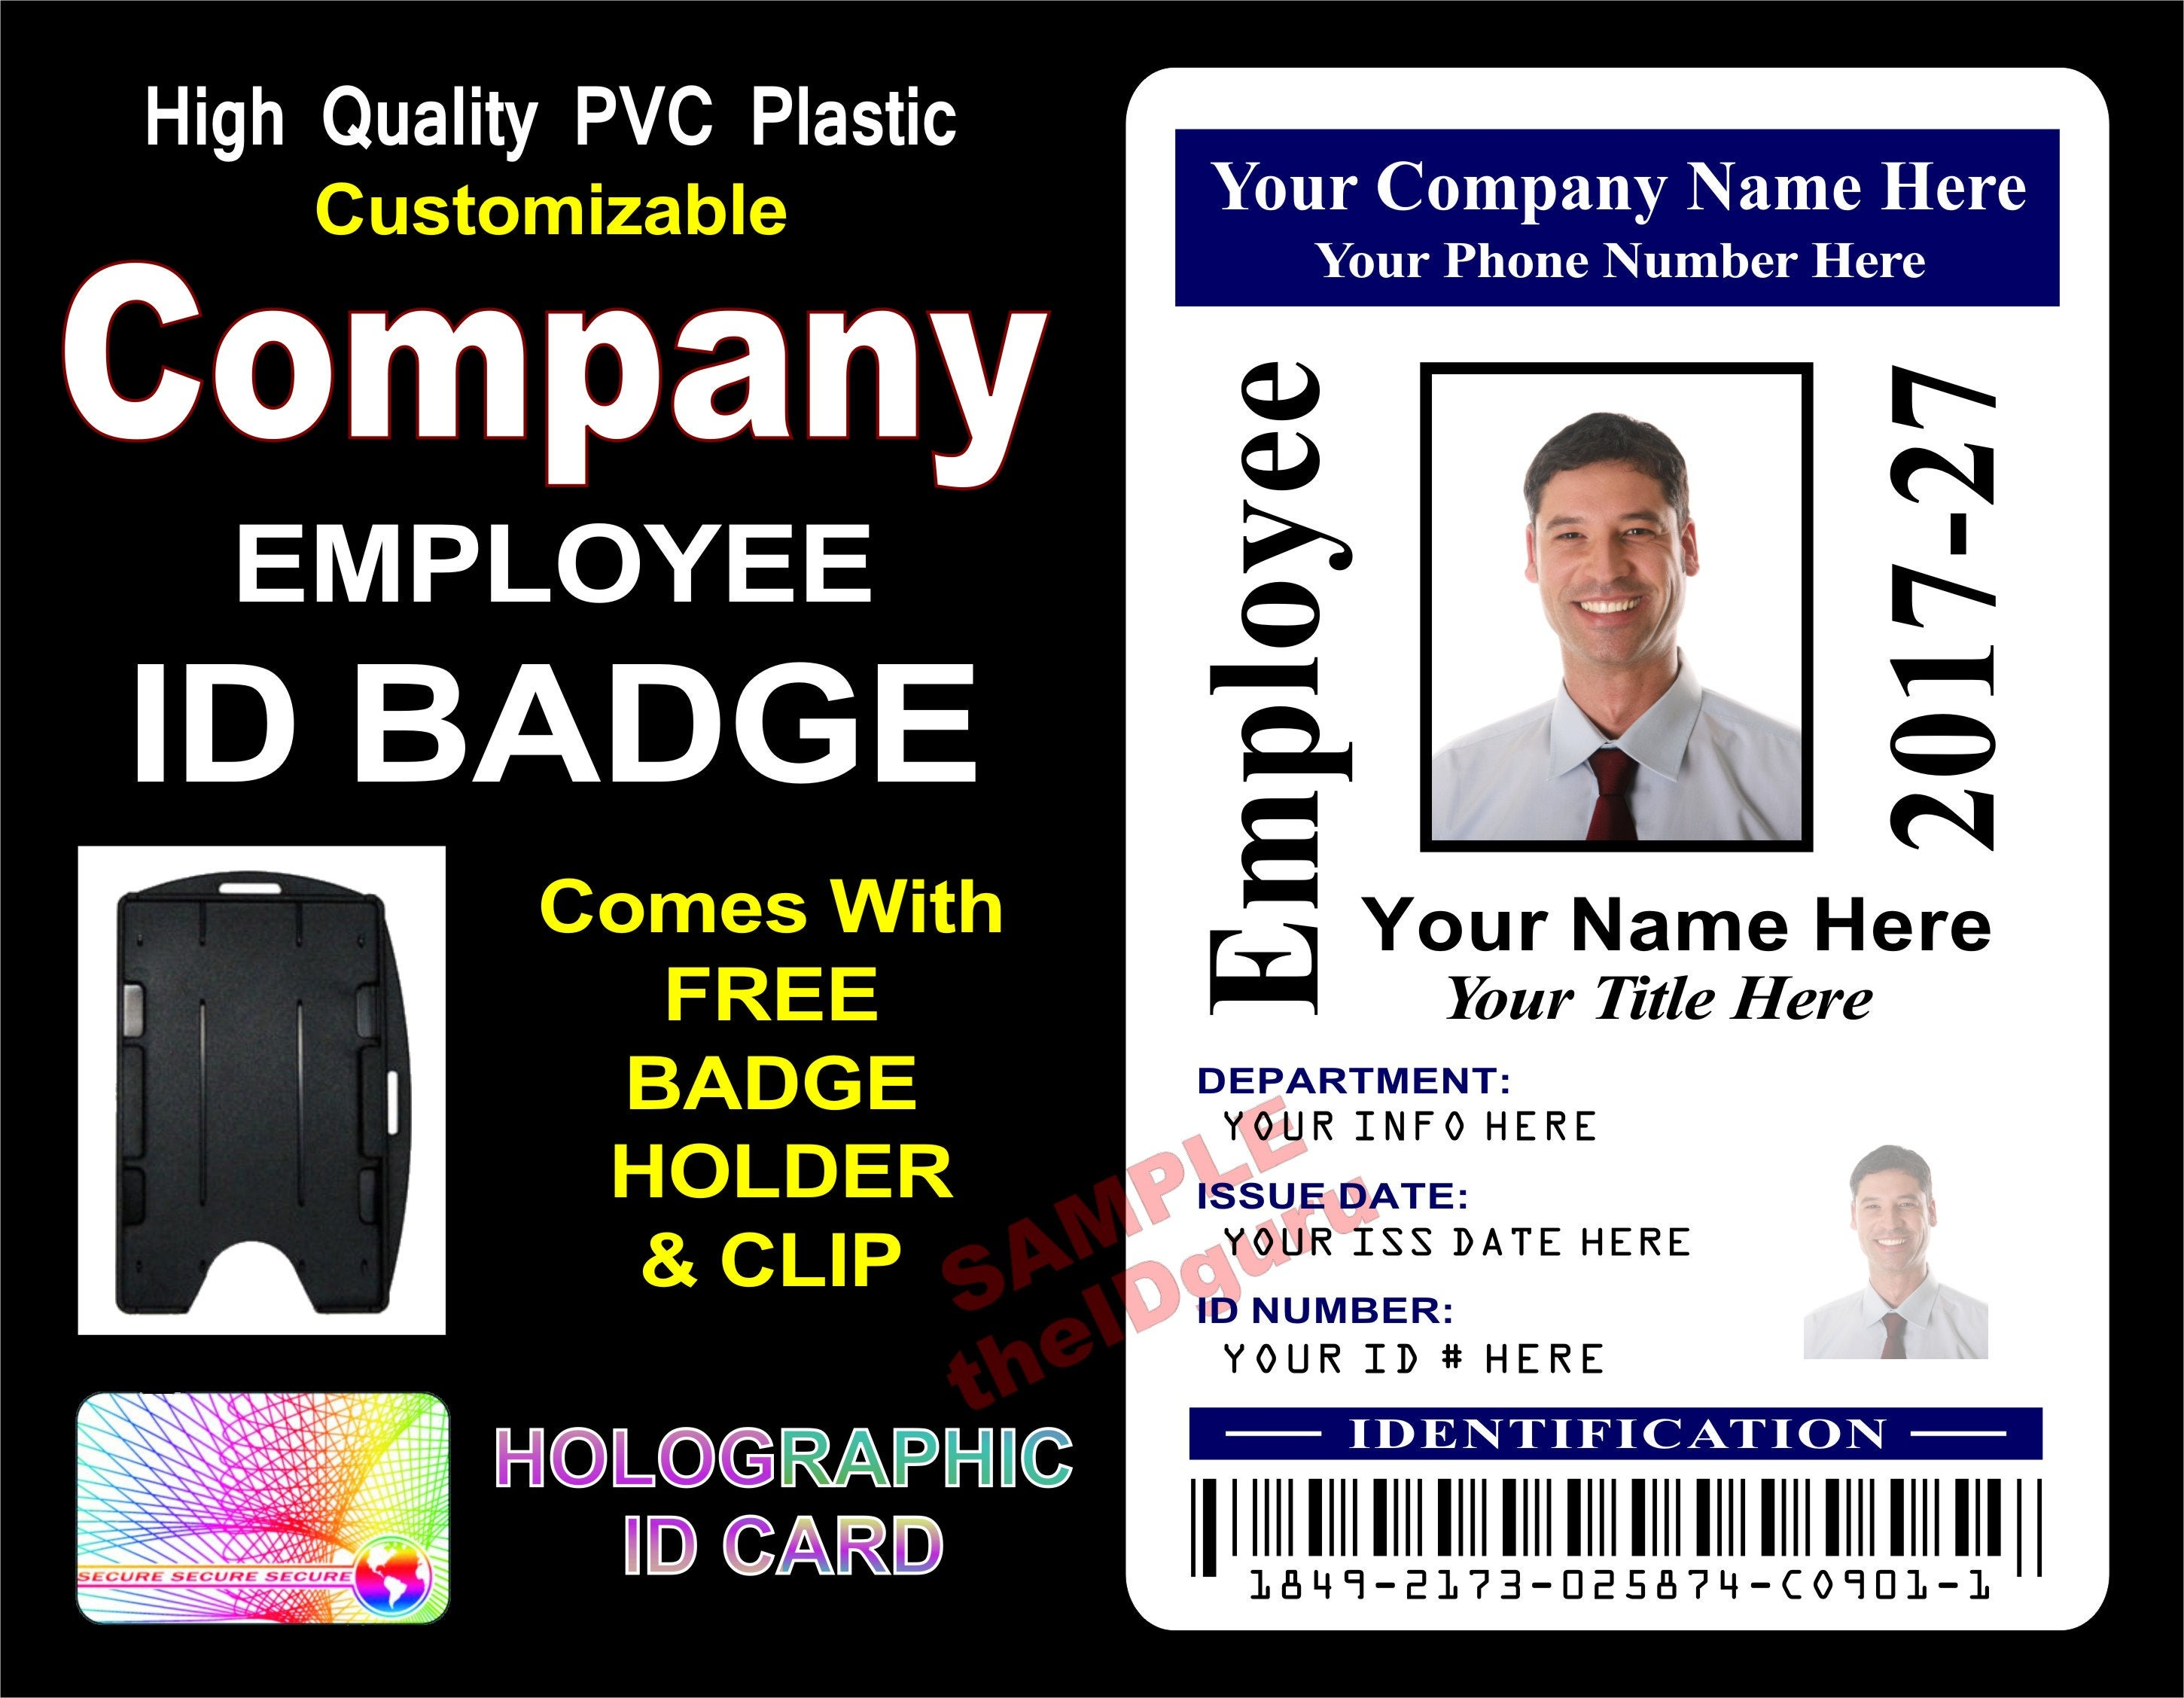 Company  Employee  Corporate Id Badge  Card Custom. Why Do You Want To Be A Cna Template. Photo Gallery Template. What Is Salary Requirements Template. Resume Examples Simple. Microsoft Word Newsletter Templates Free Download Template. Pet Sitter Business Card Template. Accord Coi Form Ffmpu. Resume Examples With No Experience Template